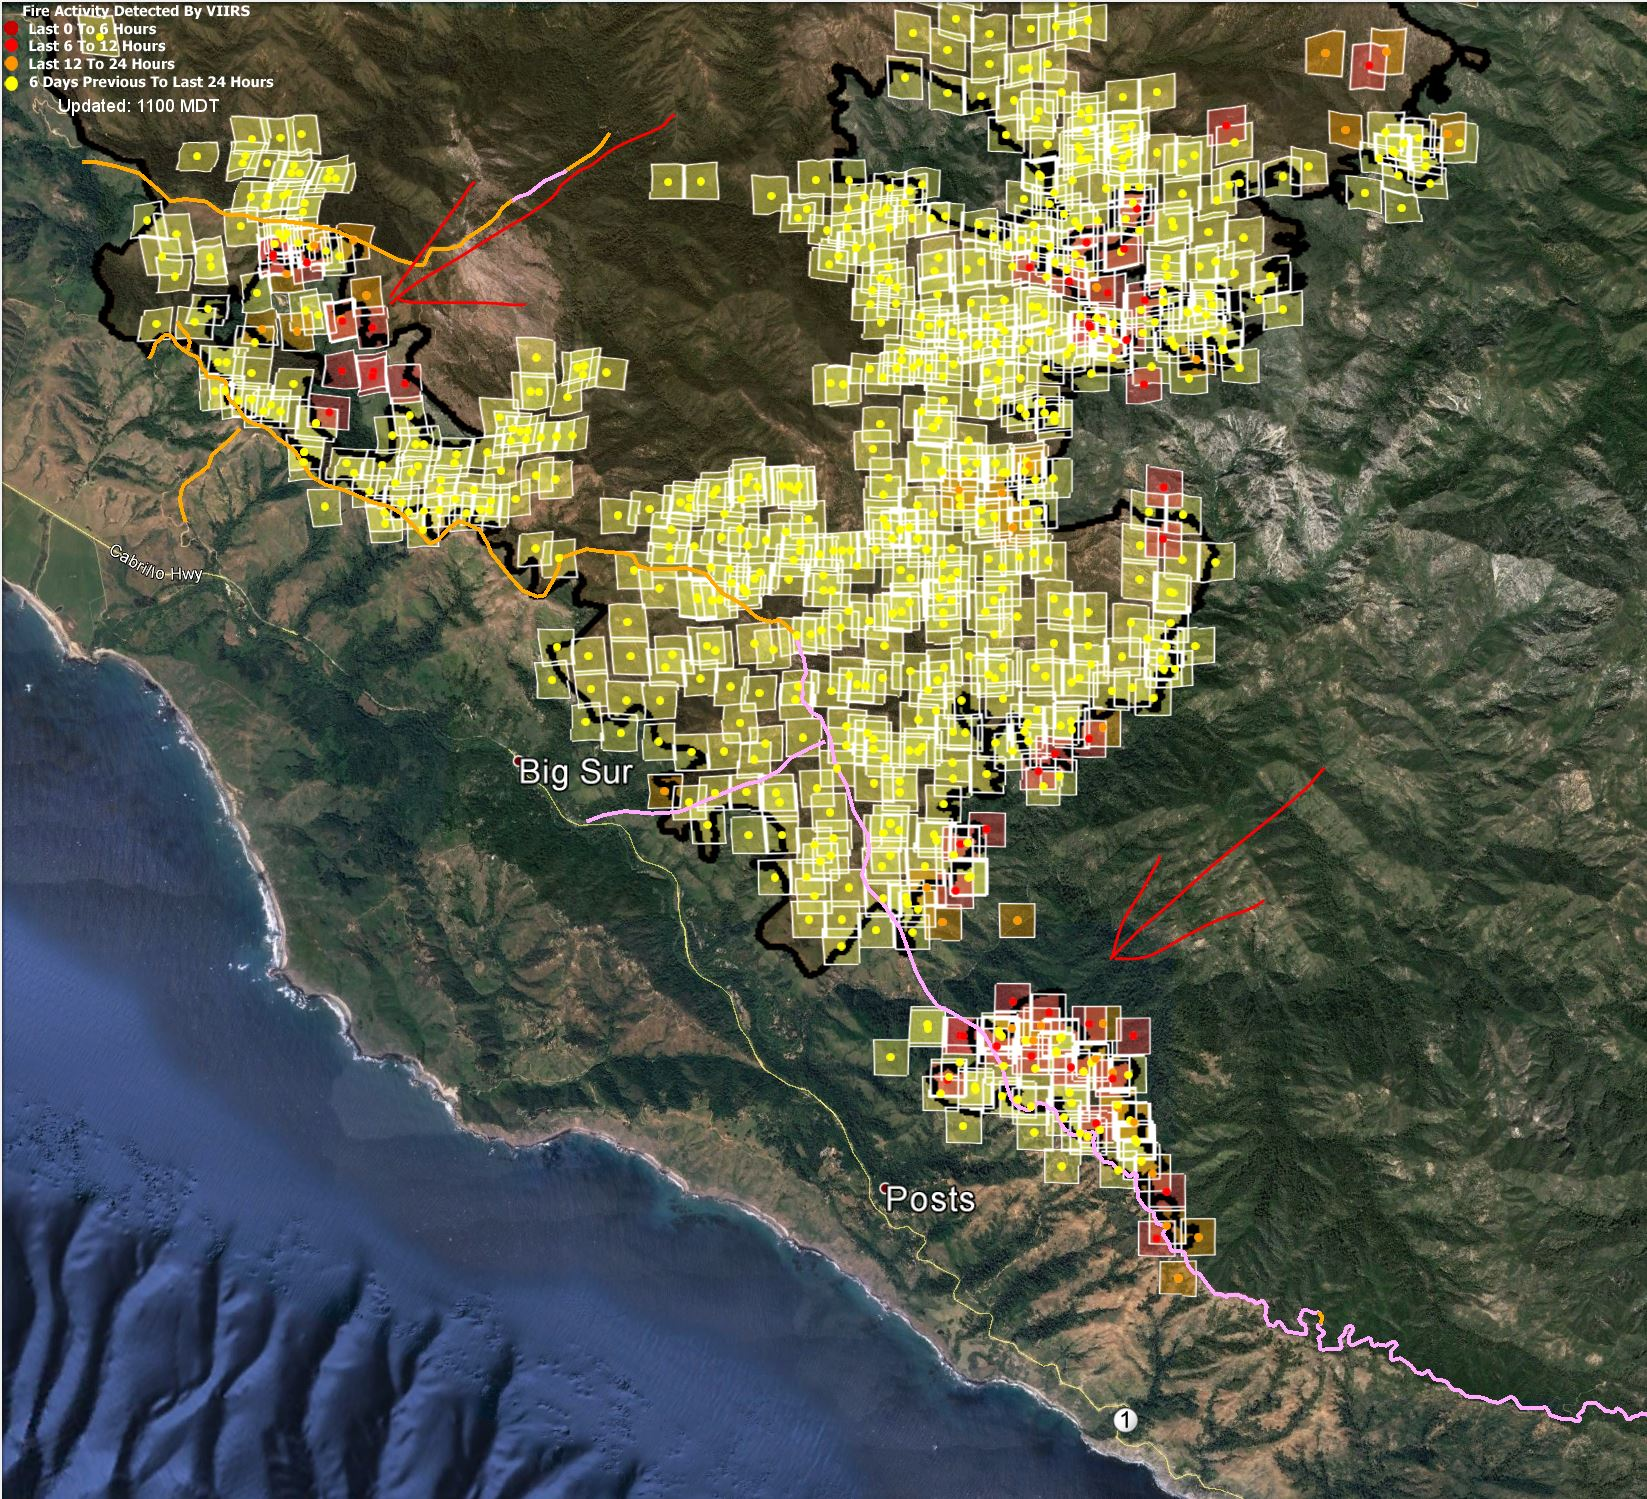 Soberanes Fire MODIS/VIIRS data — 1030 8/13